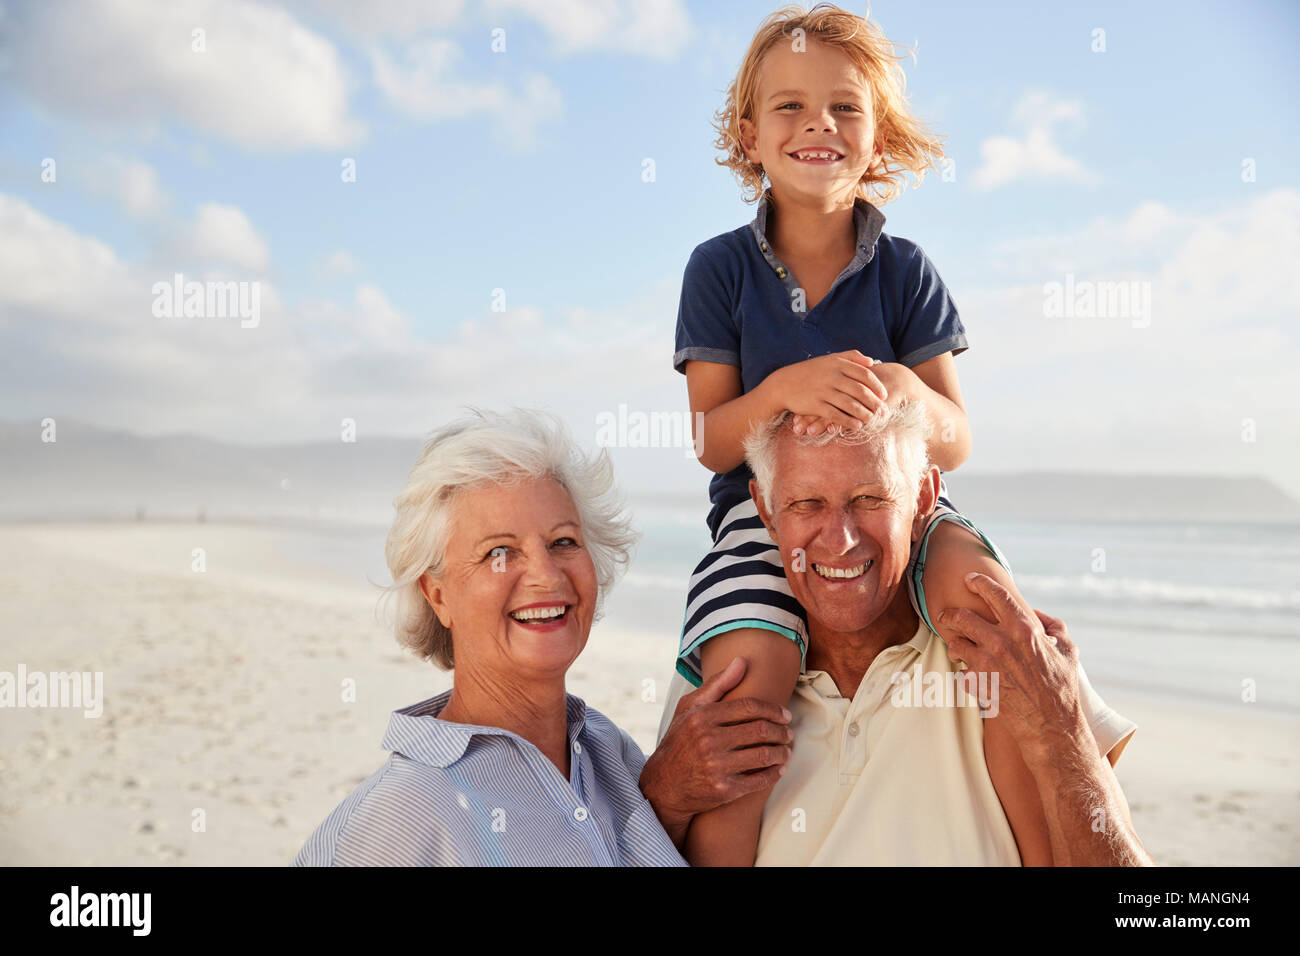 Grandparents Carrying Grandson On Shoulders On Walk Along Beach - Stock Image